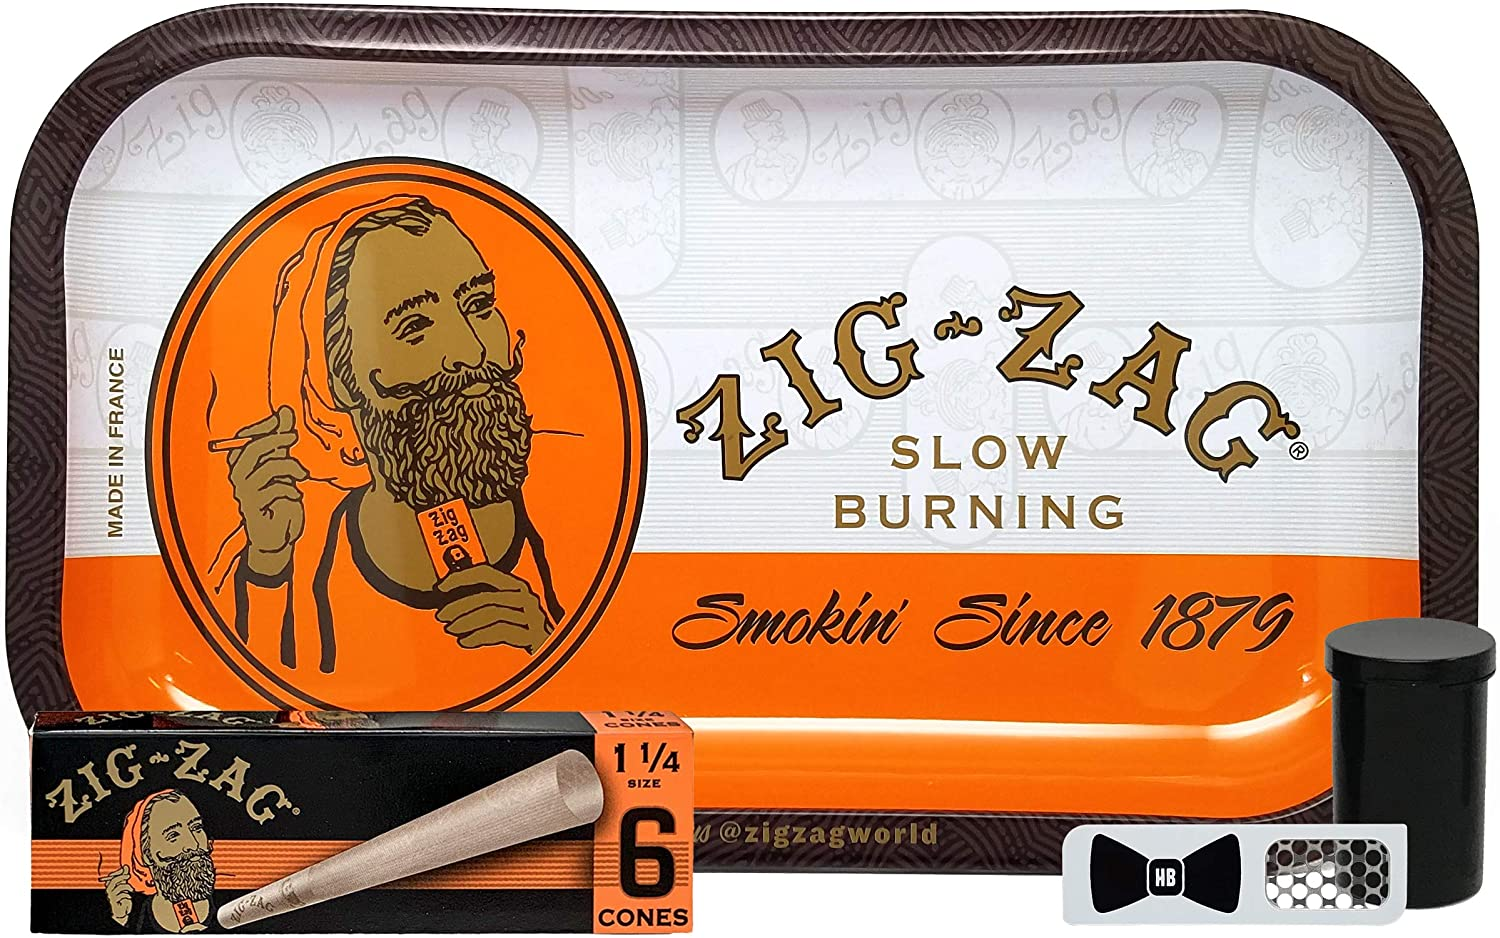 Zig Zag 1 1/4 Pre Rolled Cones (1 Pack), Zig Zag Orange Rolling Tray, Small Flip Top Storage Container (2 Pack), with Hippie Butler Grinder Card - 5 Item Bundle